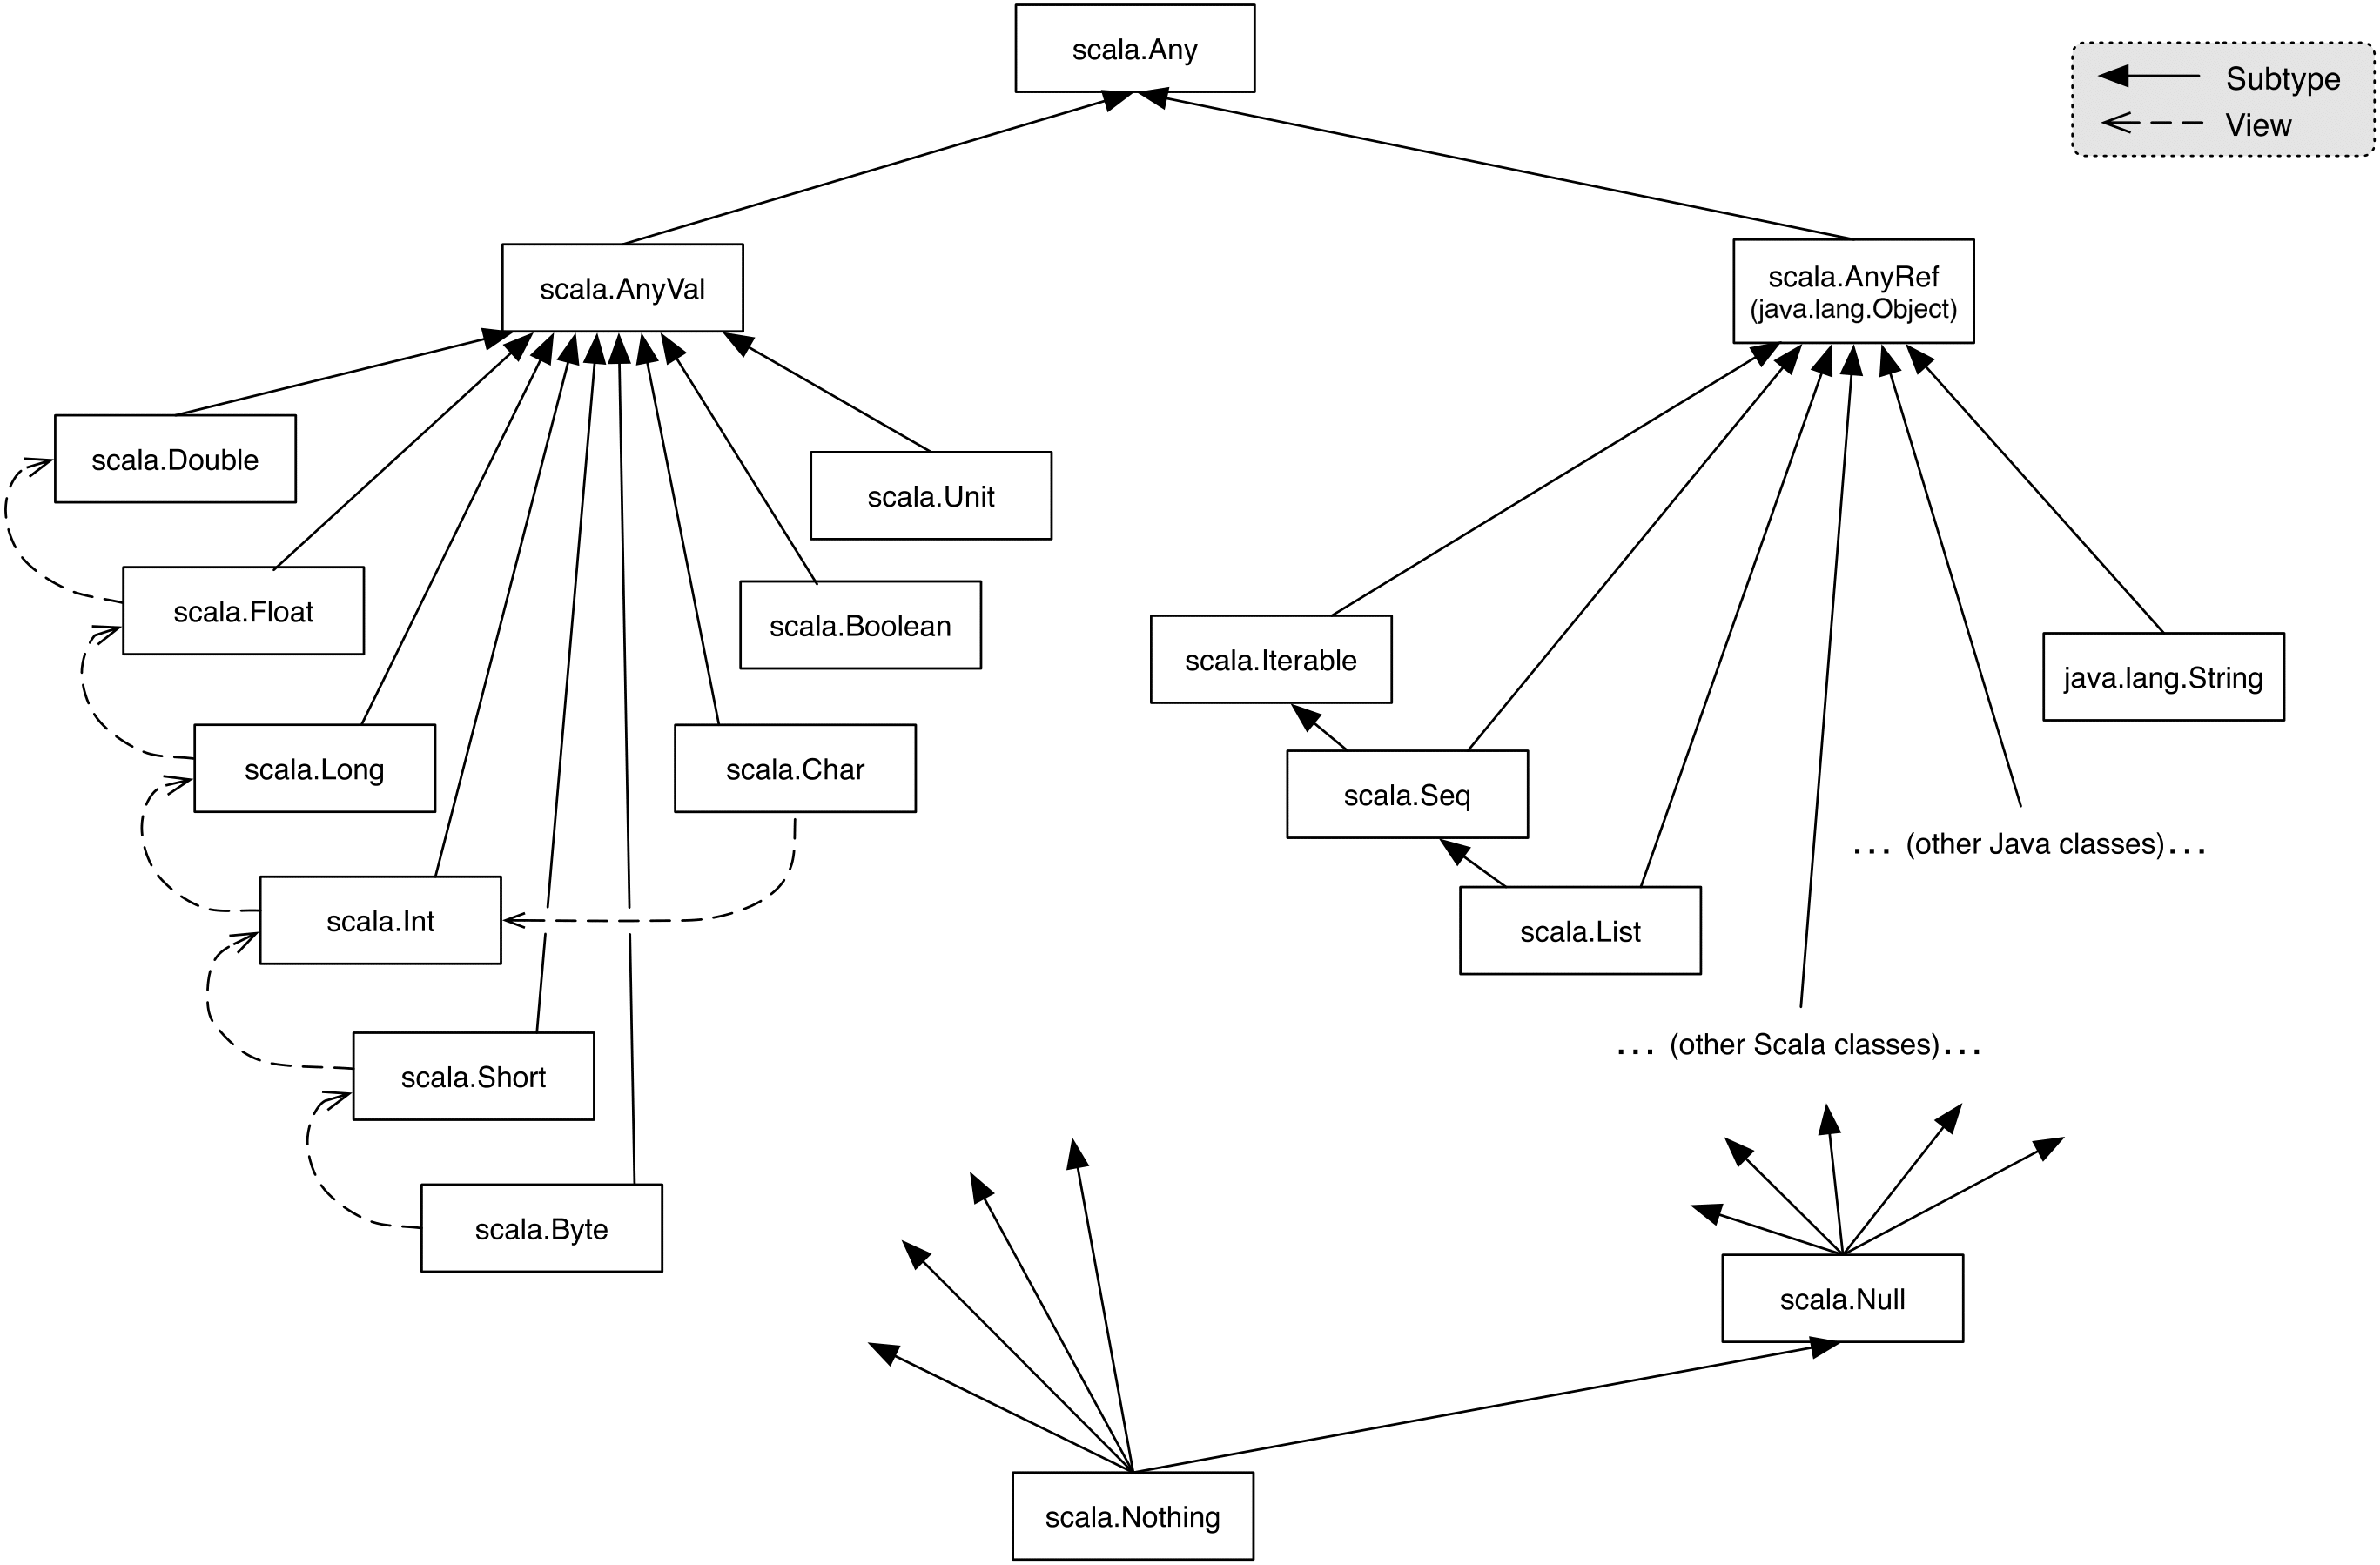 The Scala type hierarchy